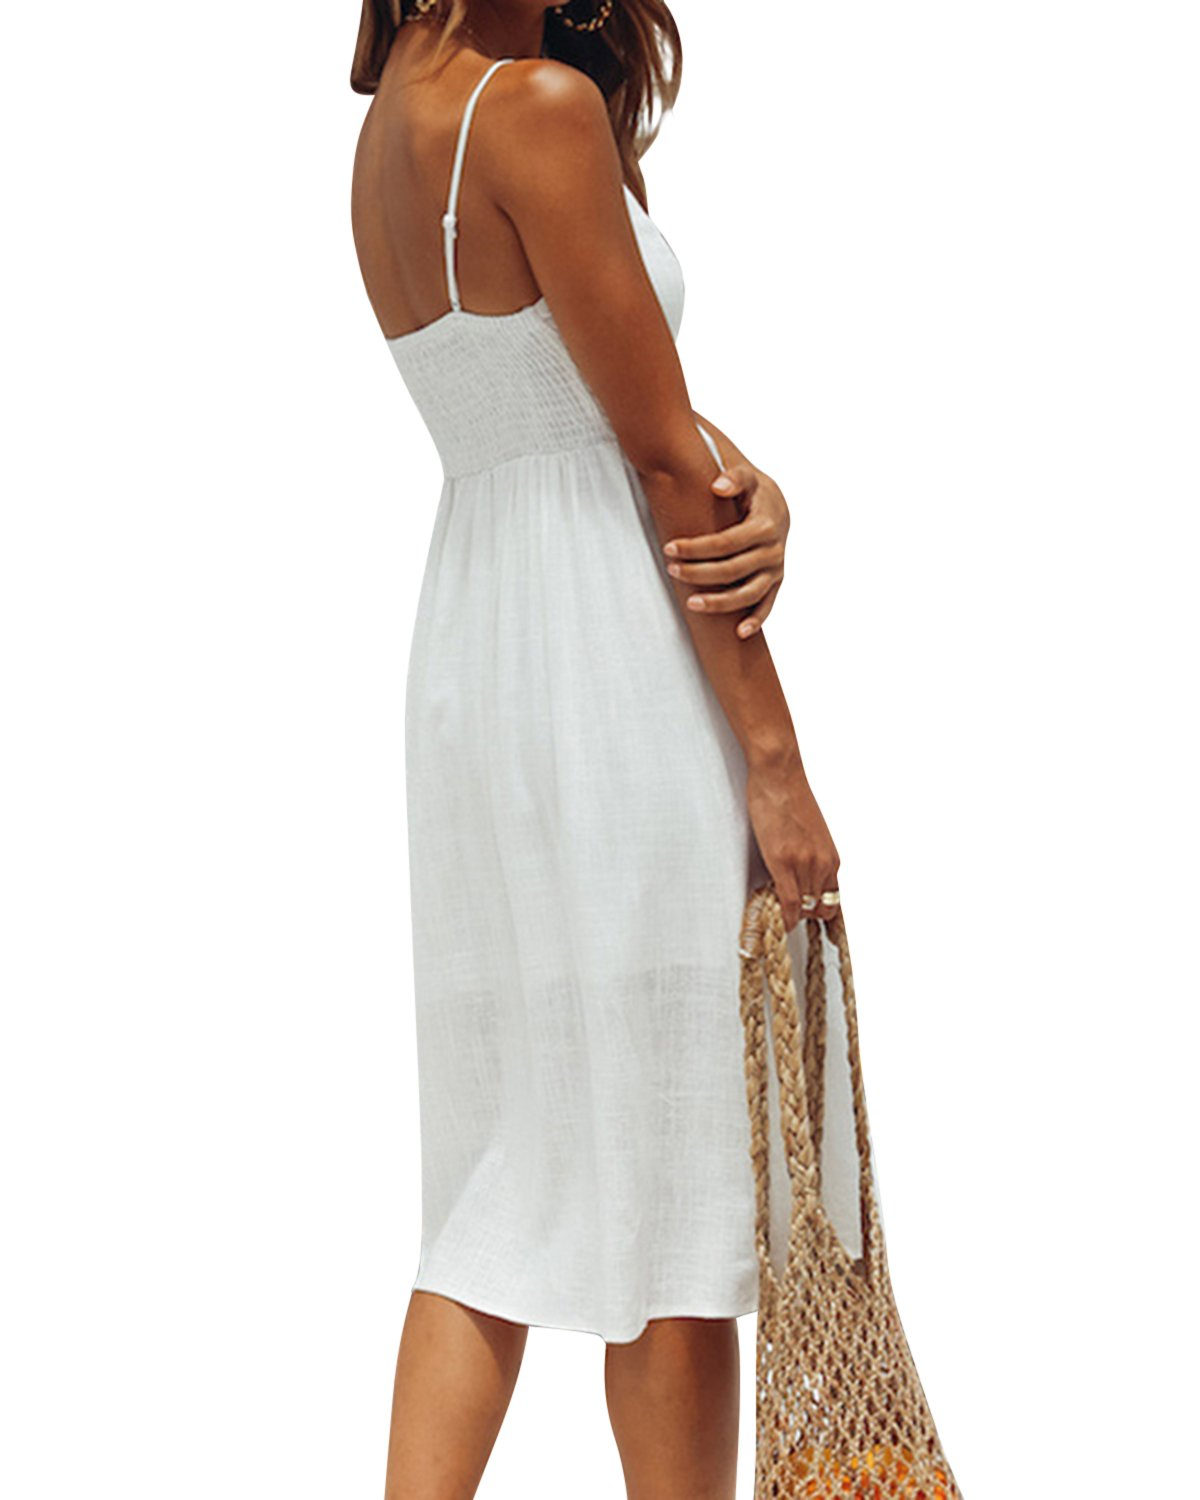 Jacansi Women Bohemian Sleeveless Backless Knee-Length Button up Midi Dress with Pocket White L by Jacansi (Image #4)